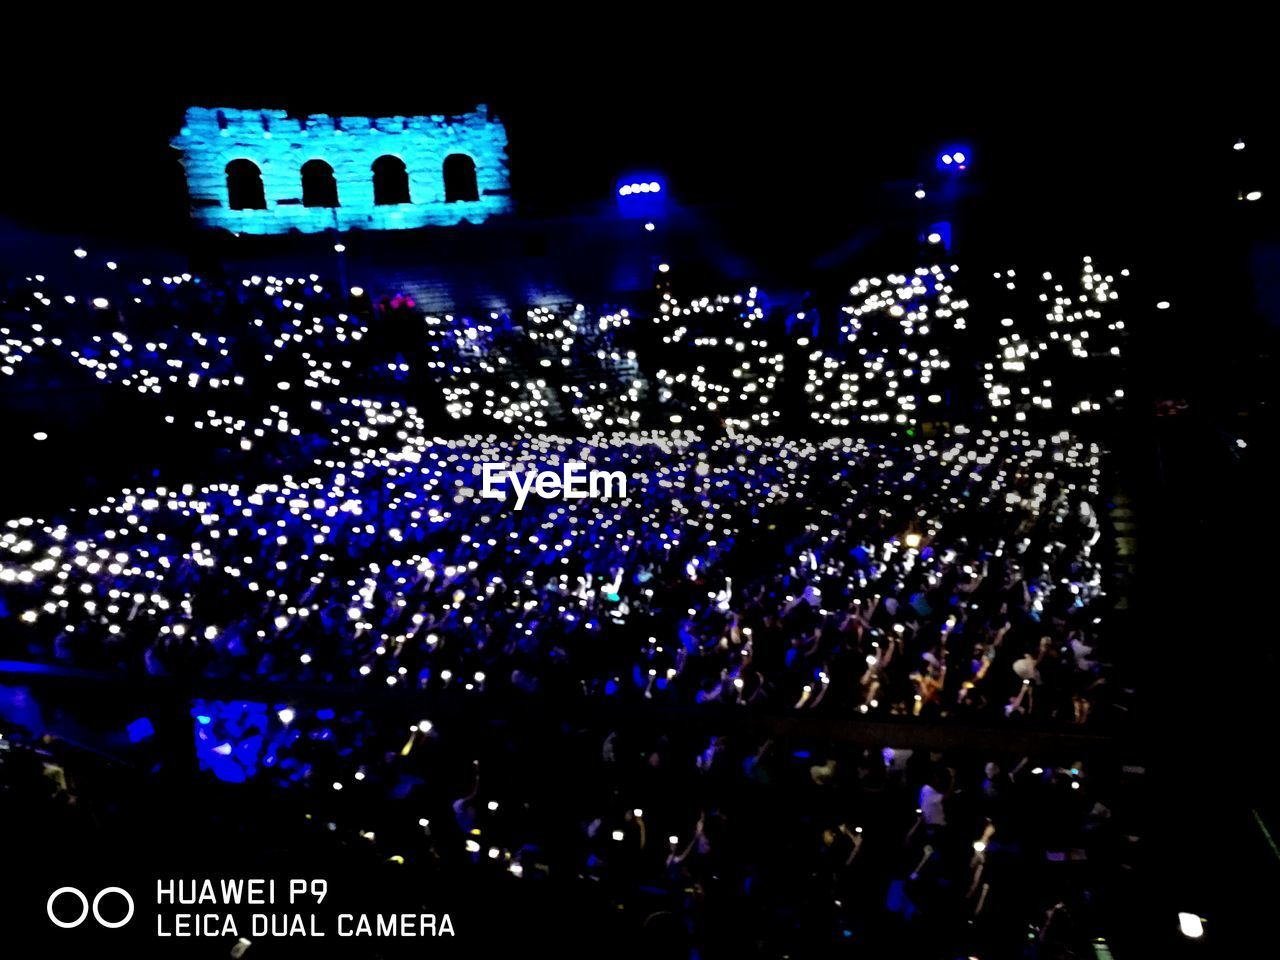 illuminated, night, large group of people, crowd, arts culture and entertainment, music, audience, real people, performance, stage light, stage - performance space, event, celebration, blue, nightlife, popular music concert, indoors, togetherness, men, fan - enthusiast, people